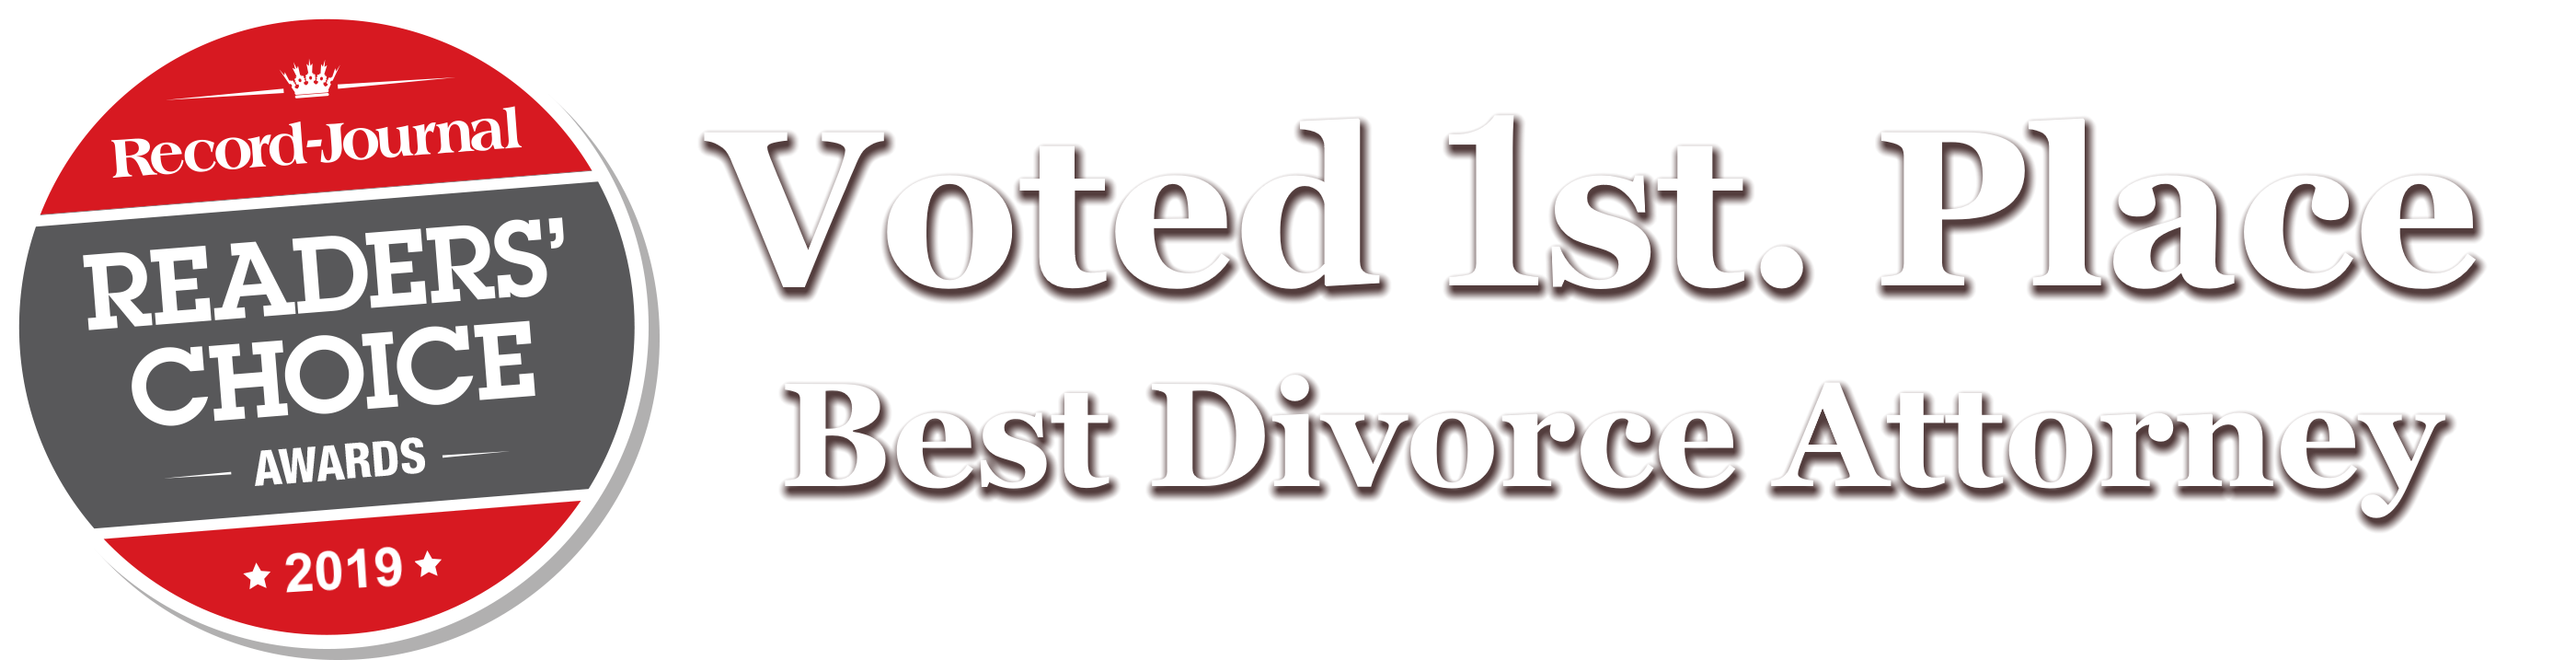 Best Divorce Attorney CT